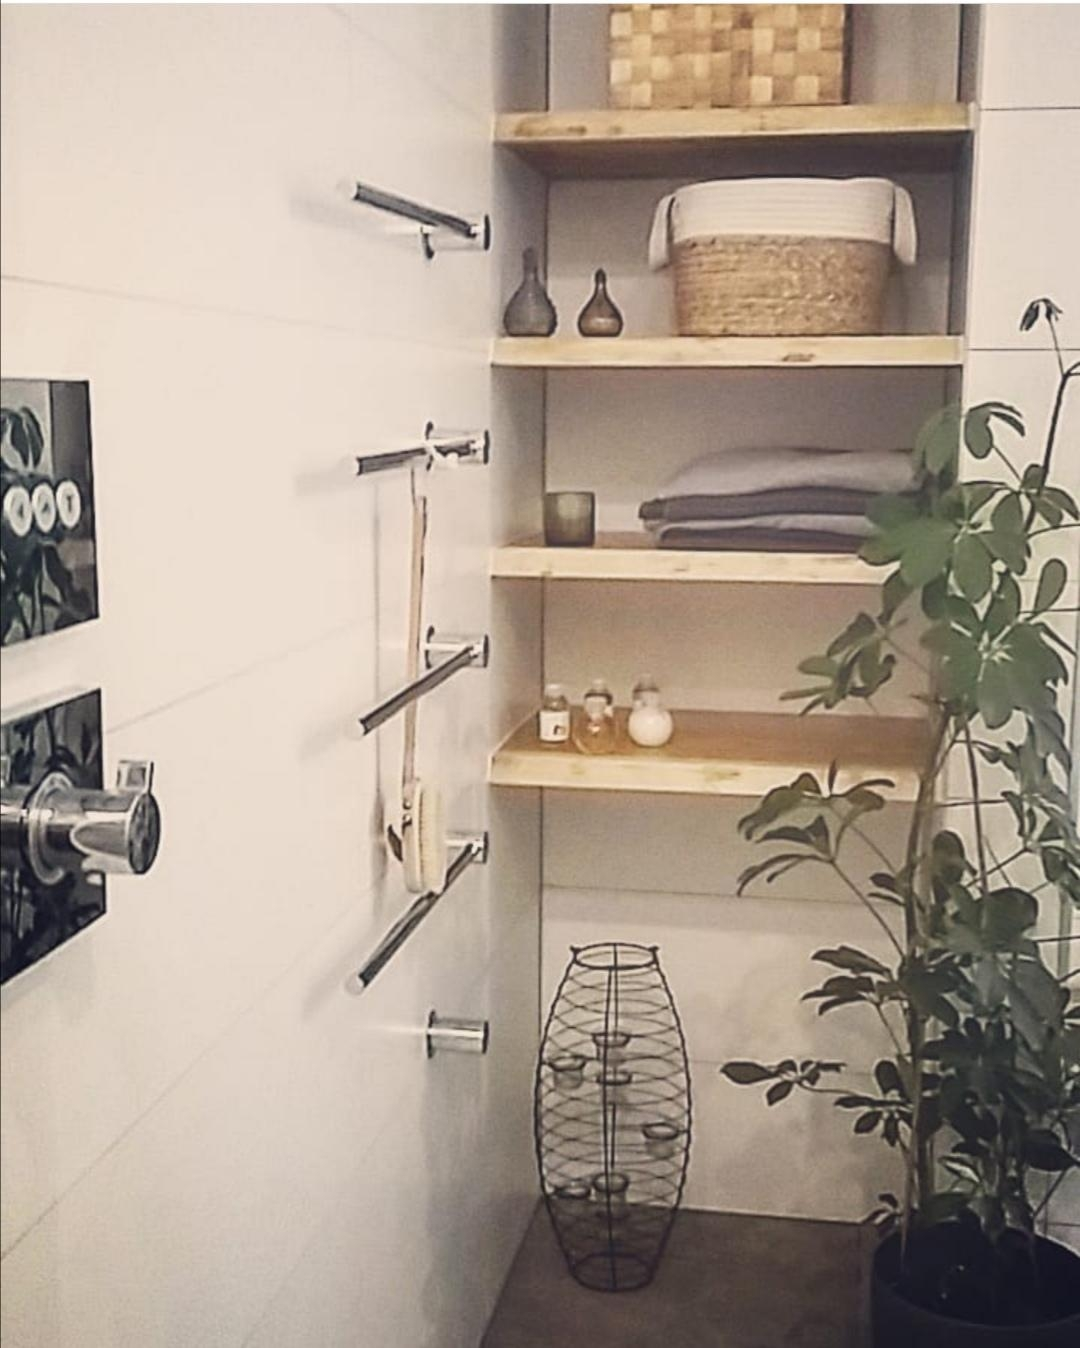 #bathroom #plants #plantsofinstagram #loveit #newhouse #homesweethome #holz #greenliving #naturmaterial #holzmöbel #inte